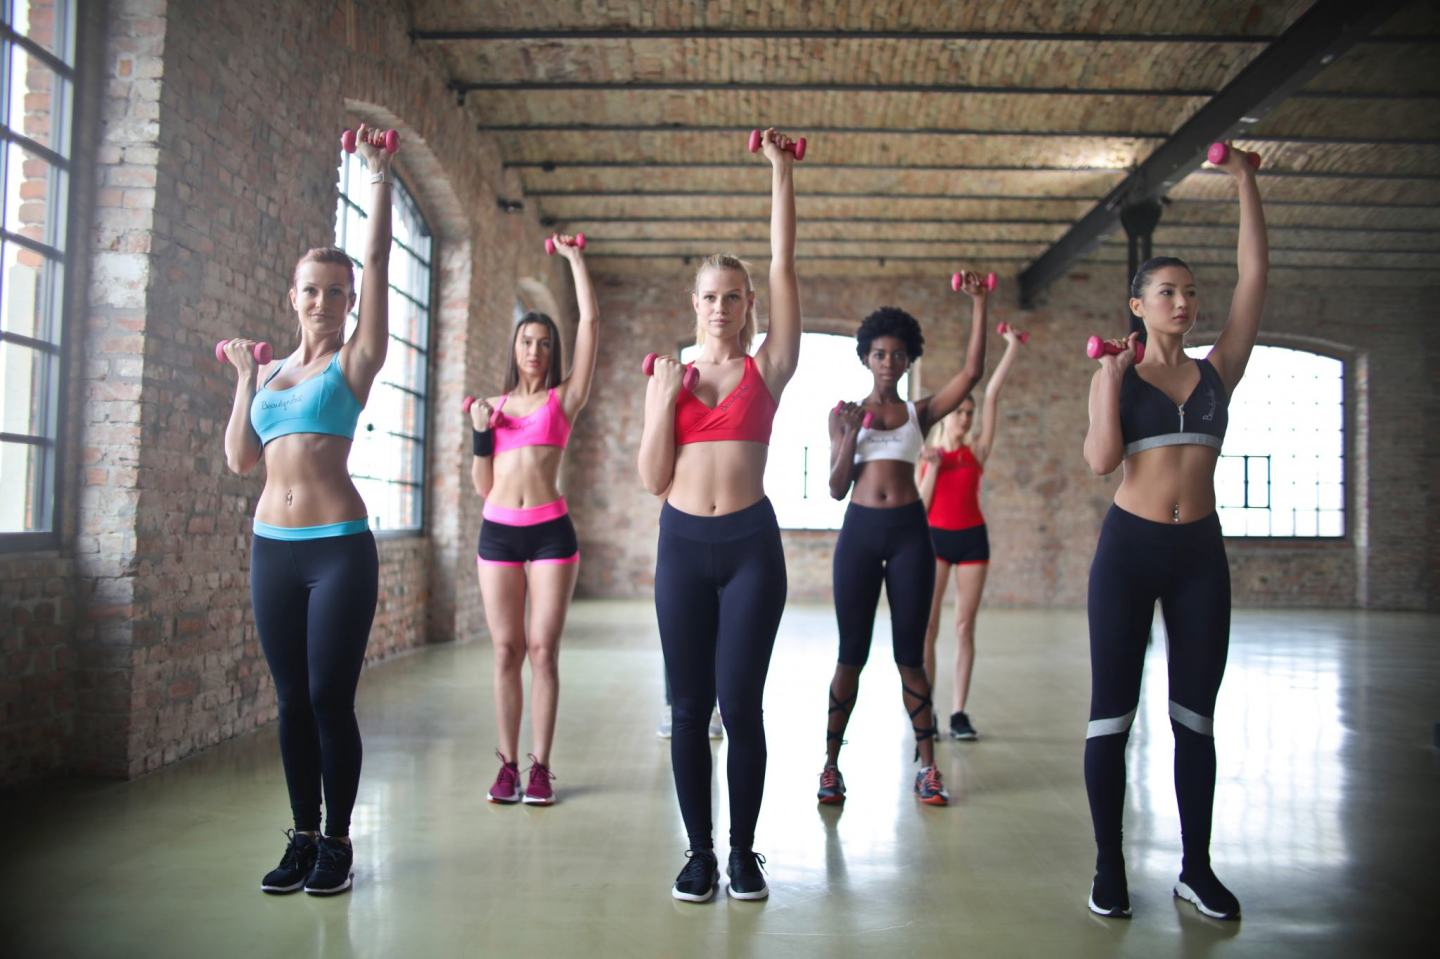 picture of a group of women exercising a form of overcoming stress